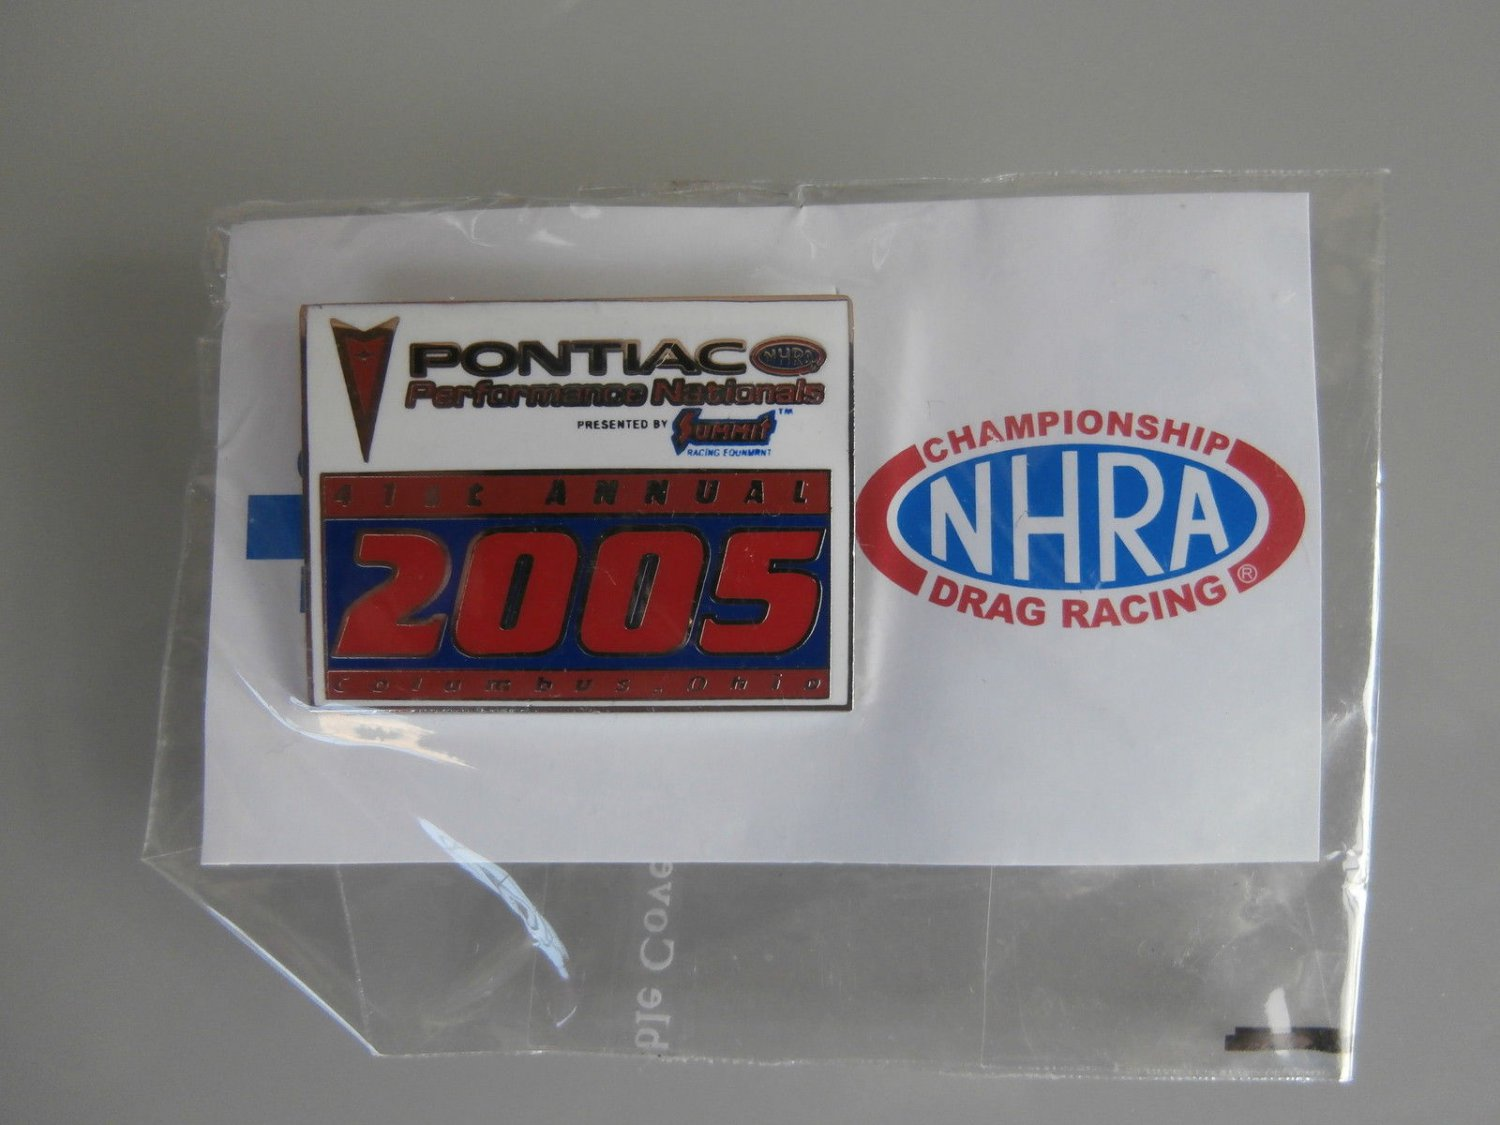 2005 NHRA Event Pin Columbus